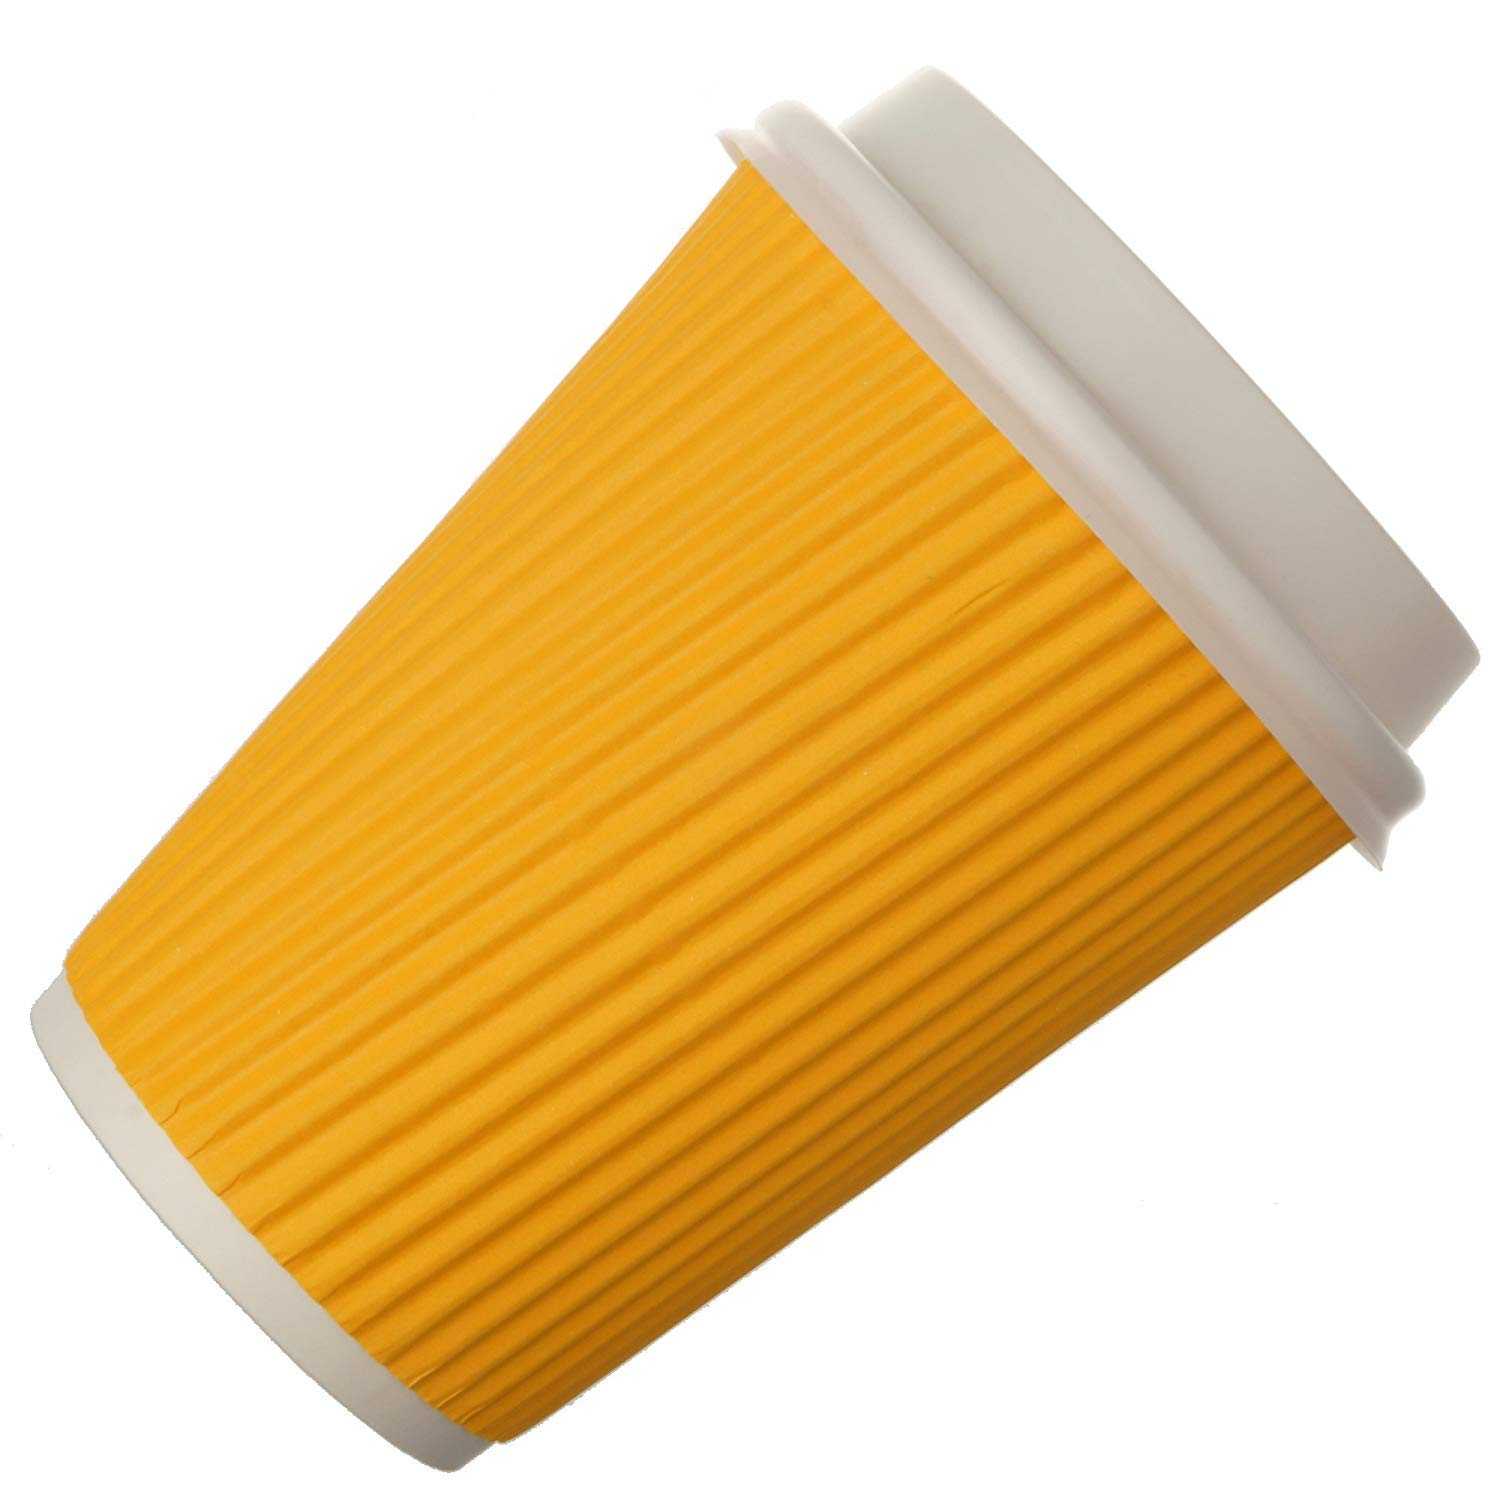 Snapcups Best Disposable Coffee Cups to Go - Premium Hot Paper Cup With Lids 12 Oz(90 count), Yellow - Perfect for Ripple and Insulated Cups - No Soaking or Smells - No Sleeves Needed